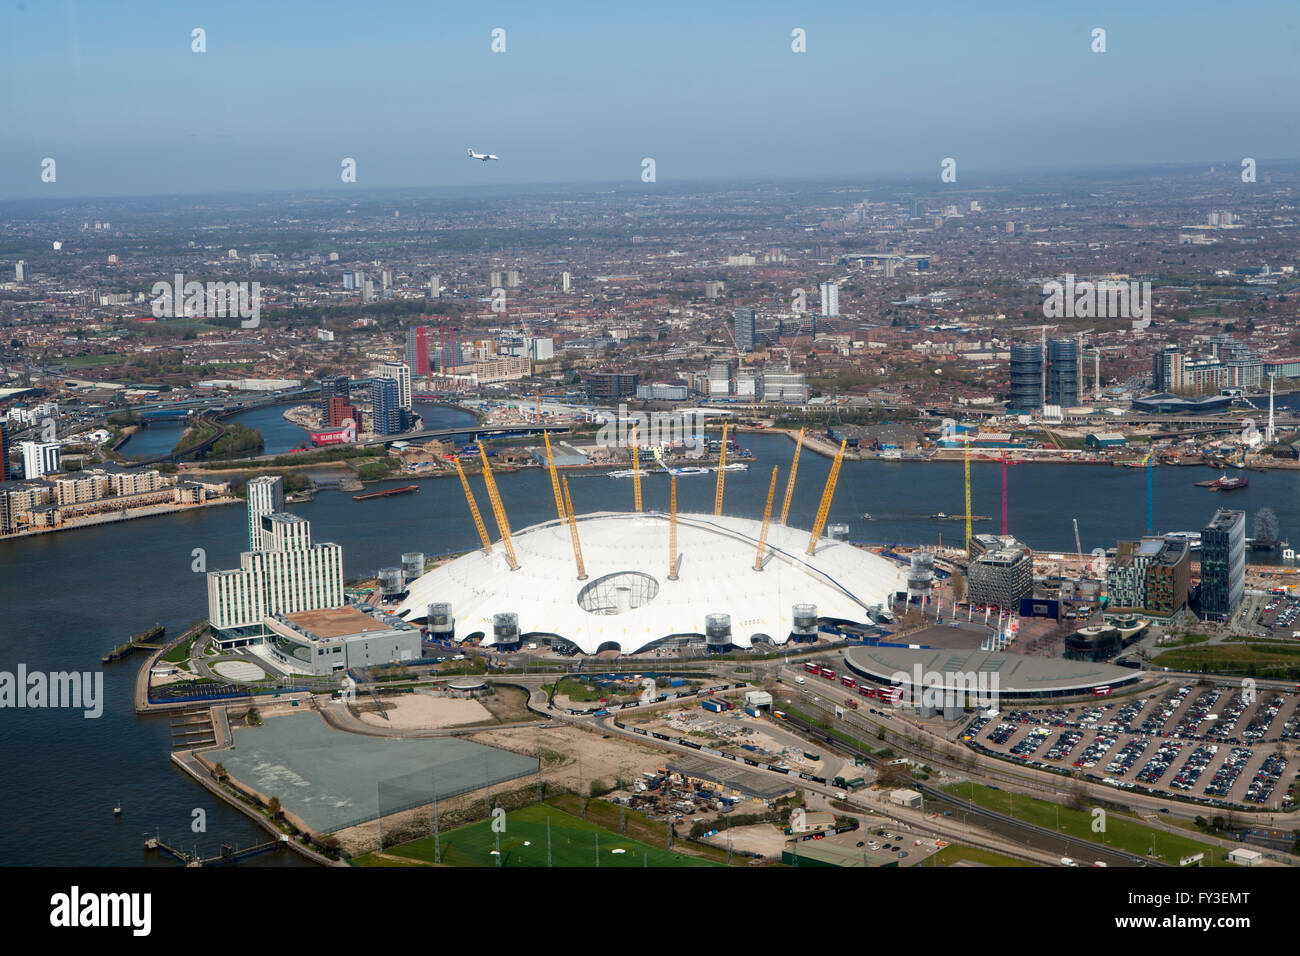 Aerial Shots of o2 Arena from Helicopter - Stock Image